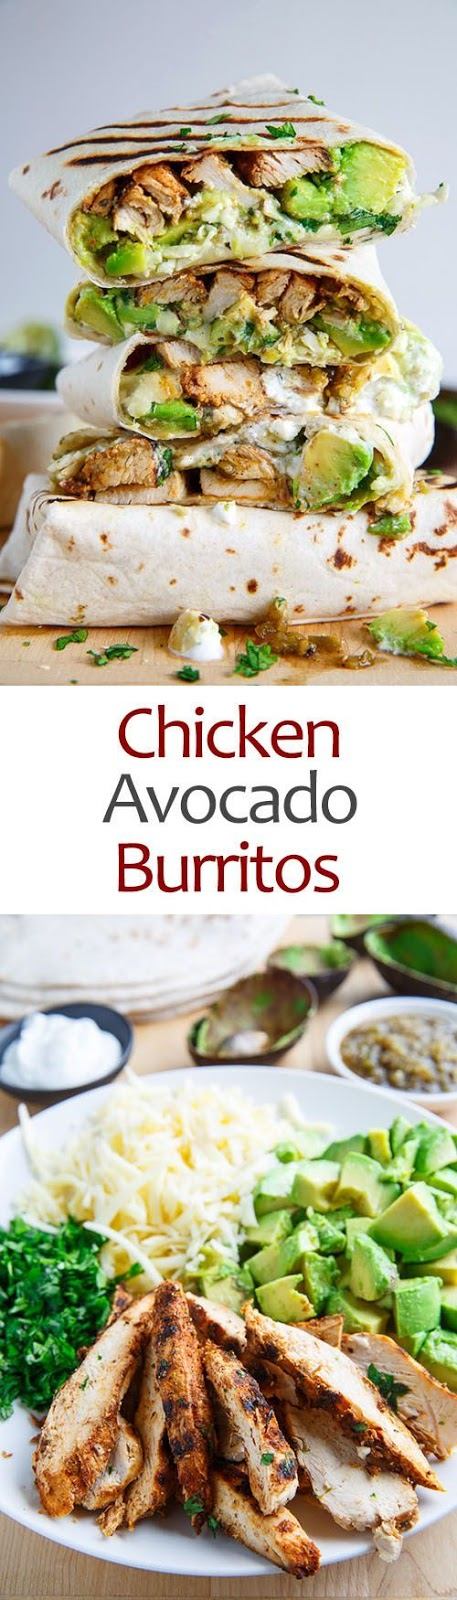 Burritos stuffed with juicy chicken, cool and creamy avocado, oozy gooey melted cheese, spicy salsa verde and sour cream!